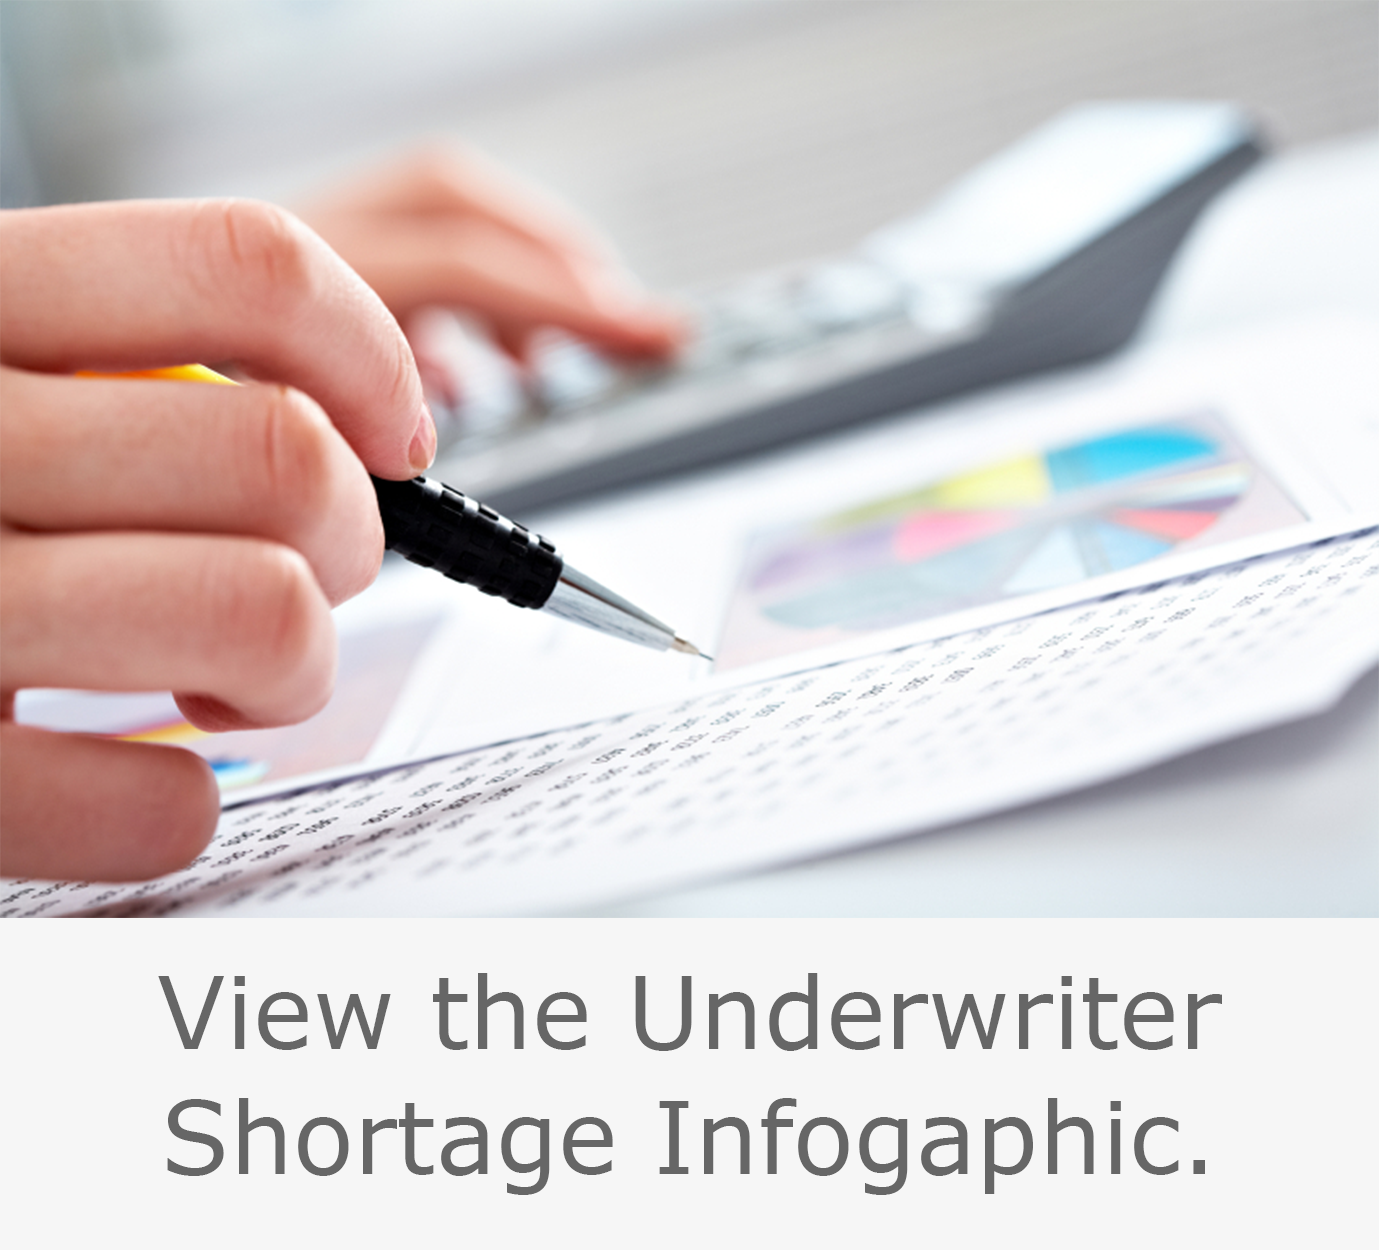 UnderwritingInfographic